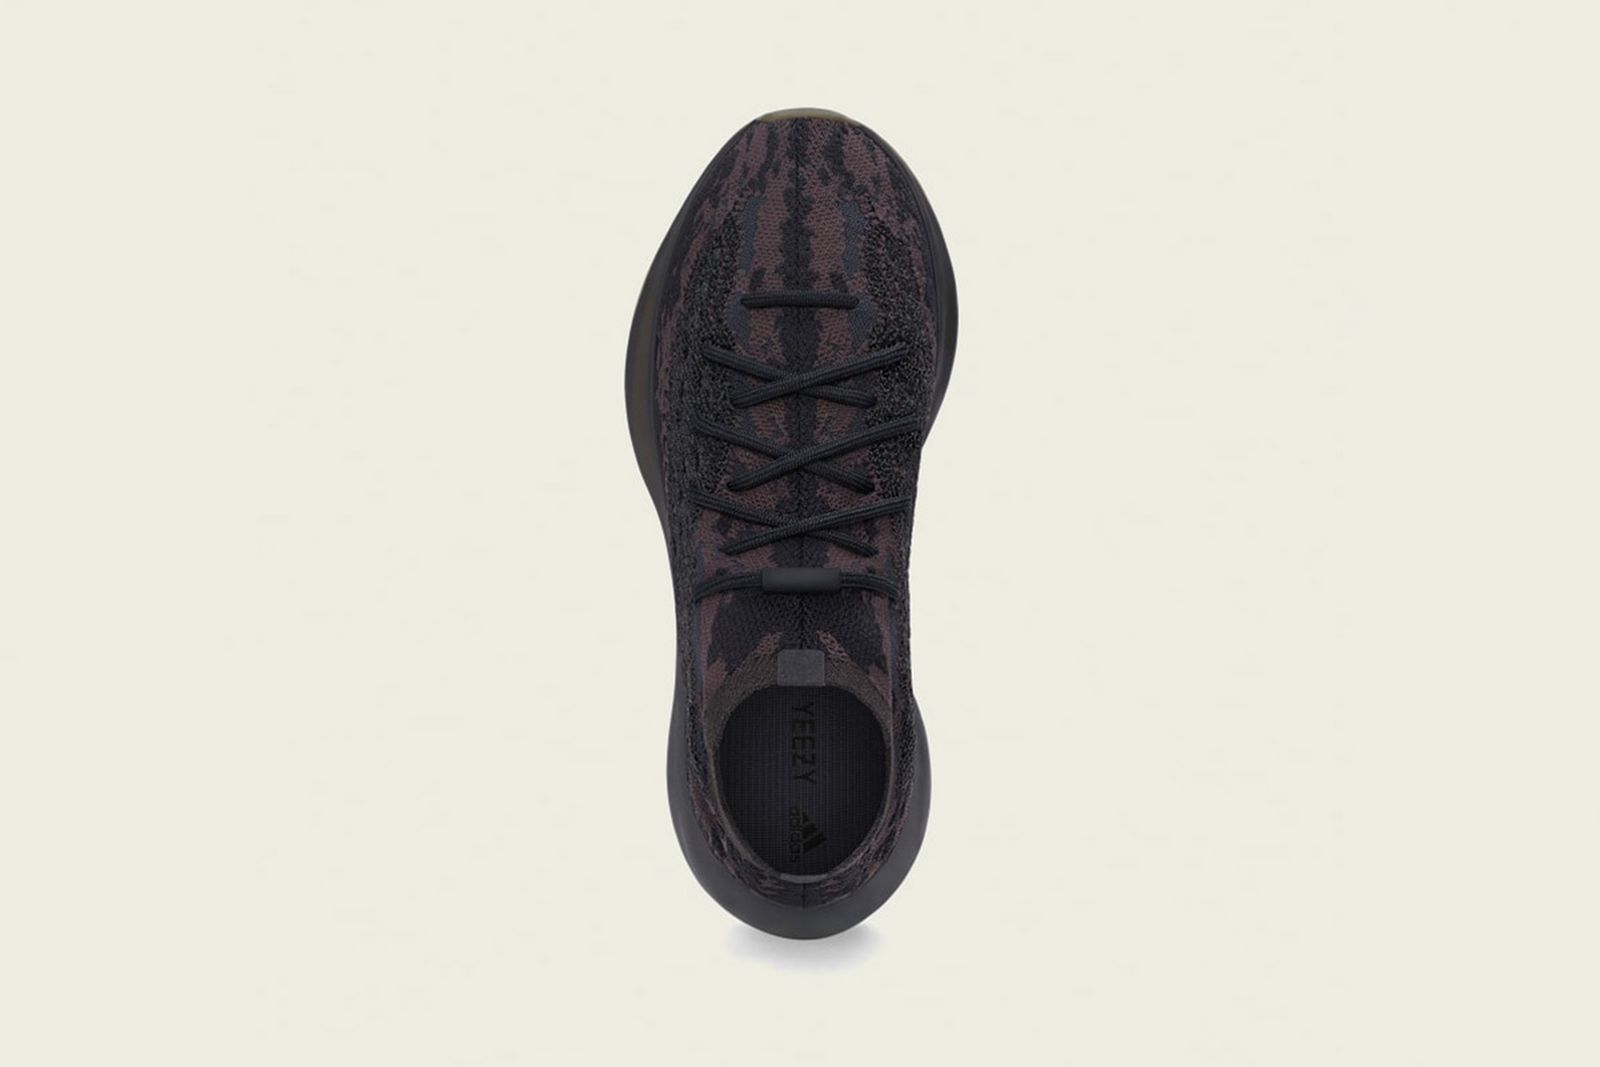 adidas-yeezy-boost-380-onyx-release-date-price-13